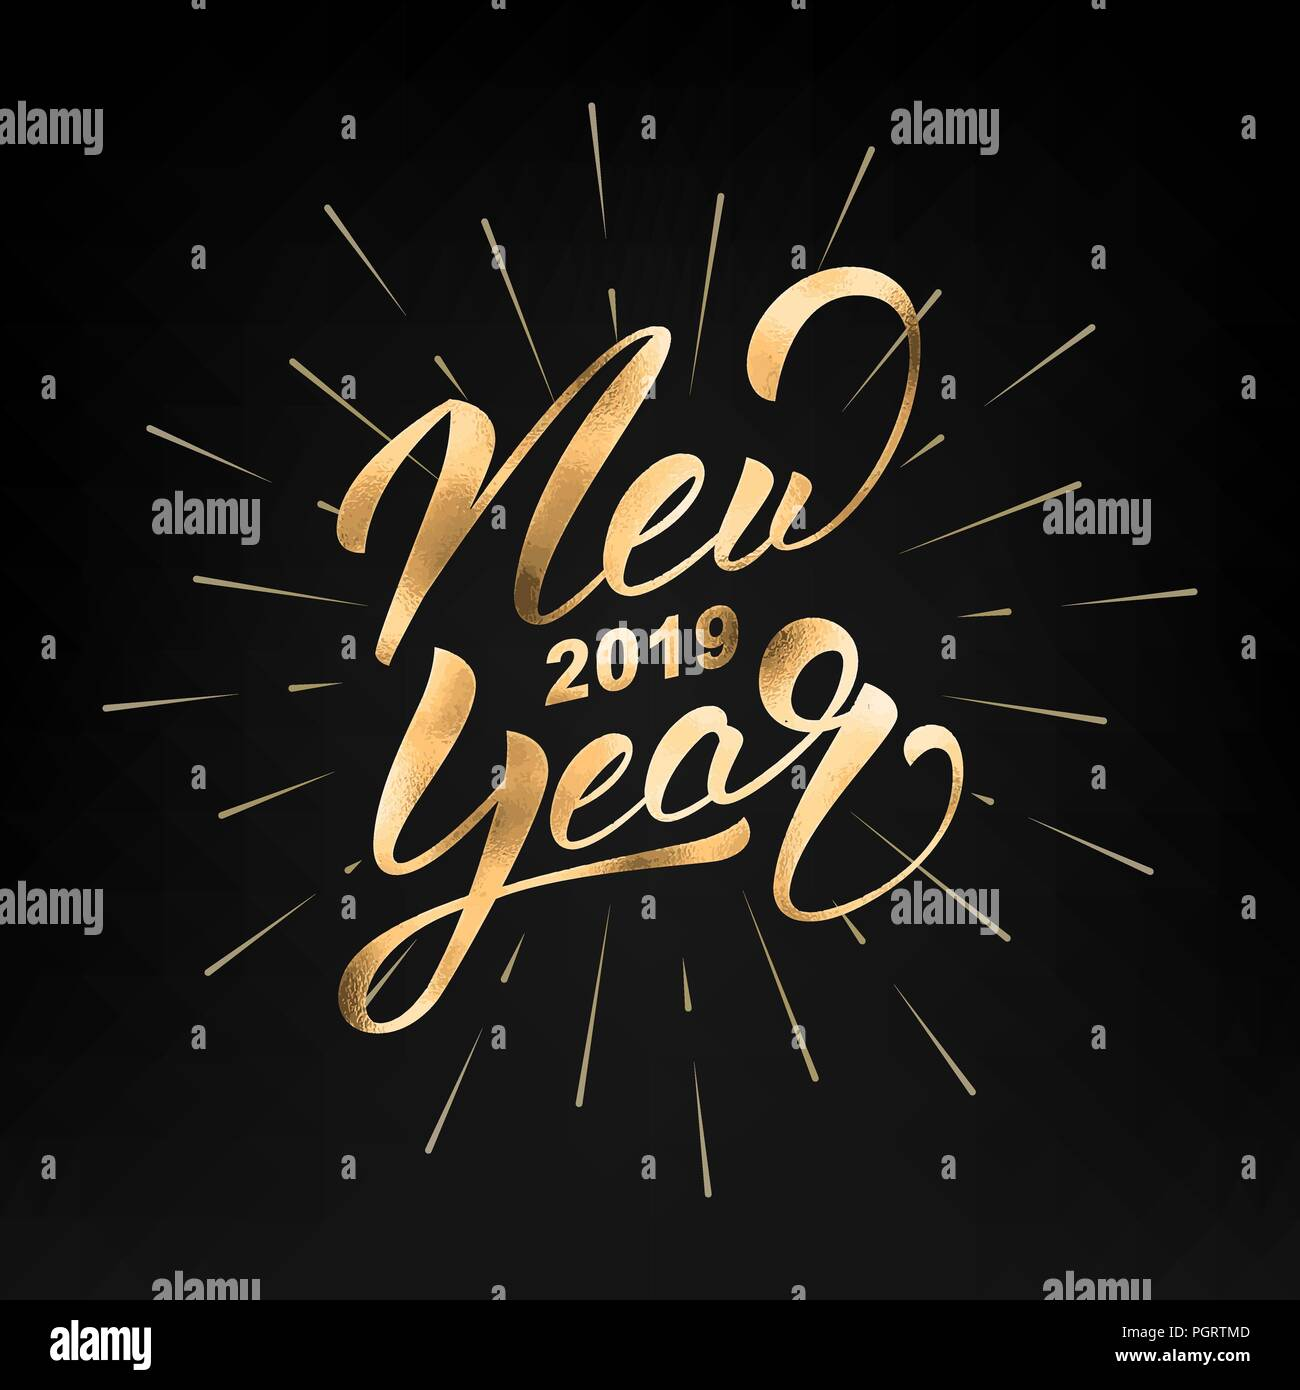 new year 2019 happy new year 2019 gold foil hand lettering label hand drawn logo for new year card poster design etc